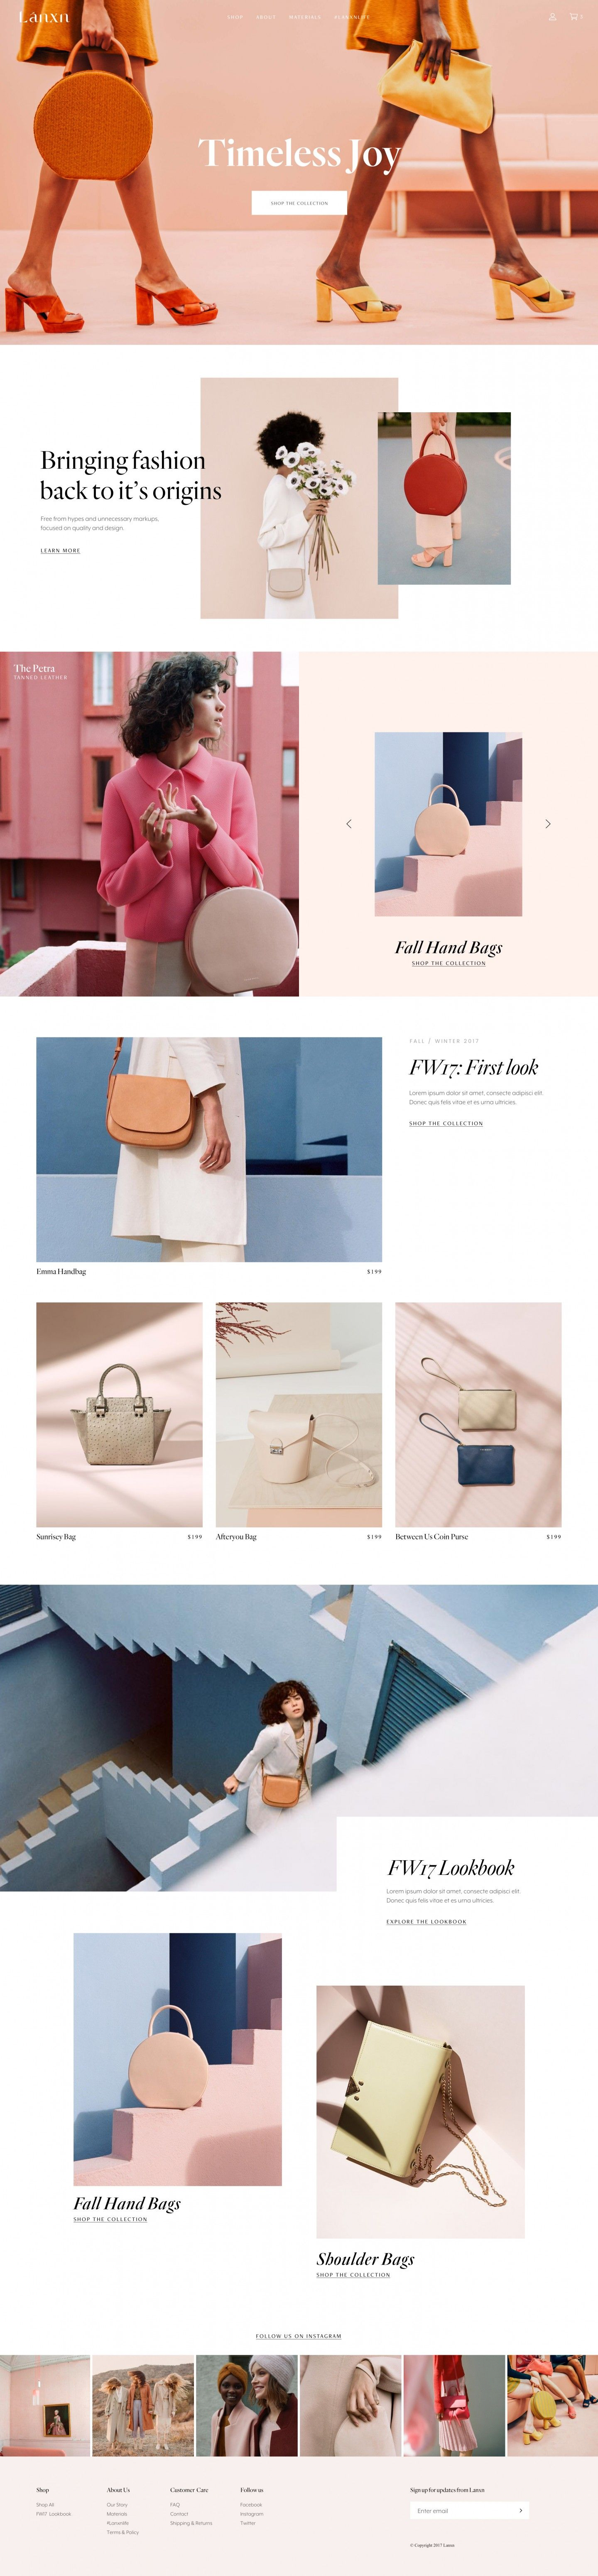 c9f6207d3296 Leather Bag Shop Homepage